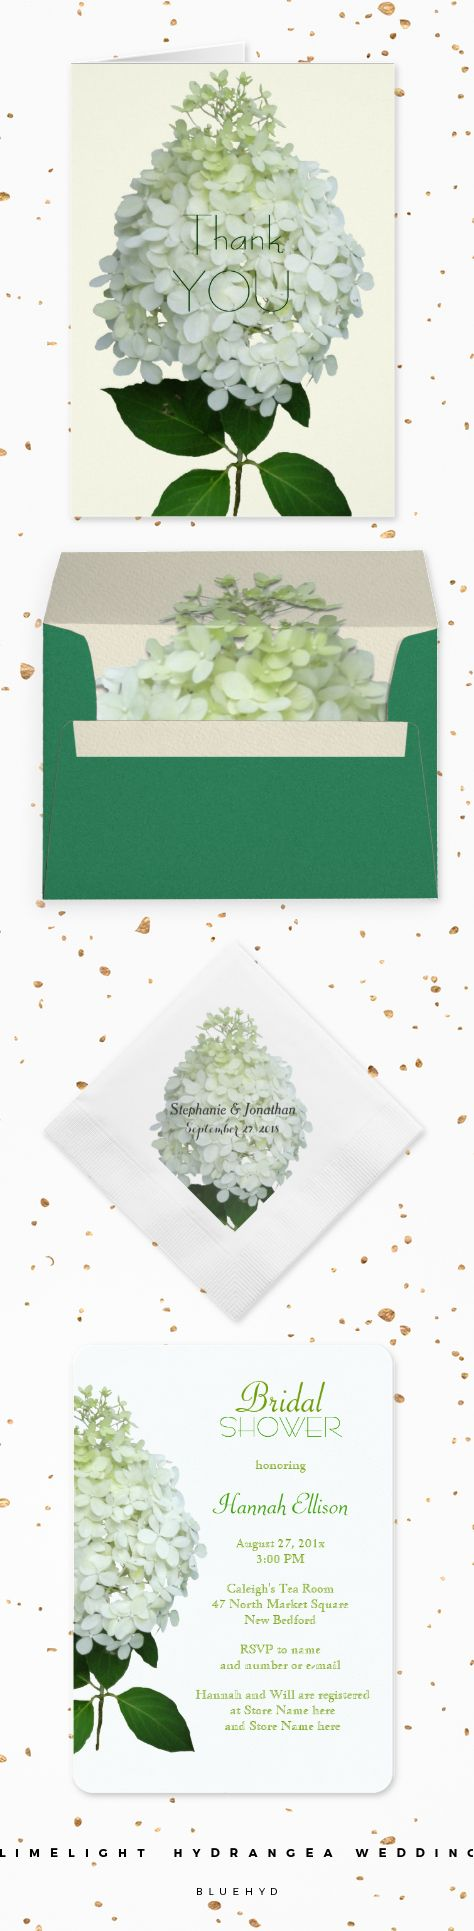 White Floral Limelight Hydrangea Wedding - Big white flowers with a tint of green, printed on paper with templates.  #bridalshower invites, custom napkins, green envelopes and thank-you cards.  View this set, and make requests for whatever you need.  BlueHyd.com #bigflowers #whitewedding #greenwedding